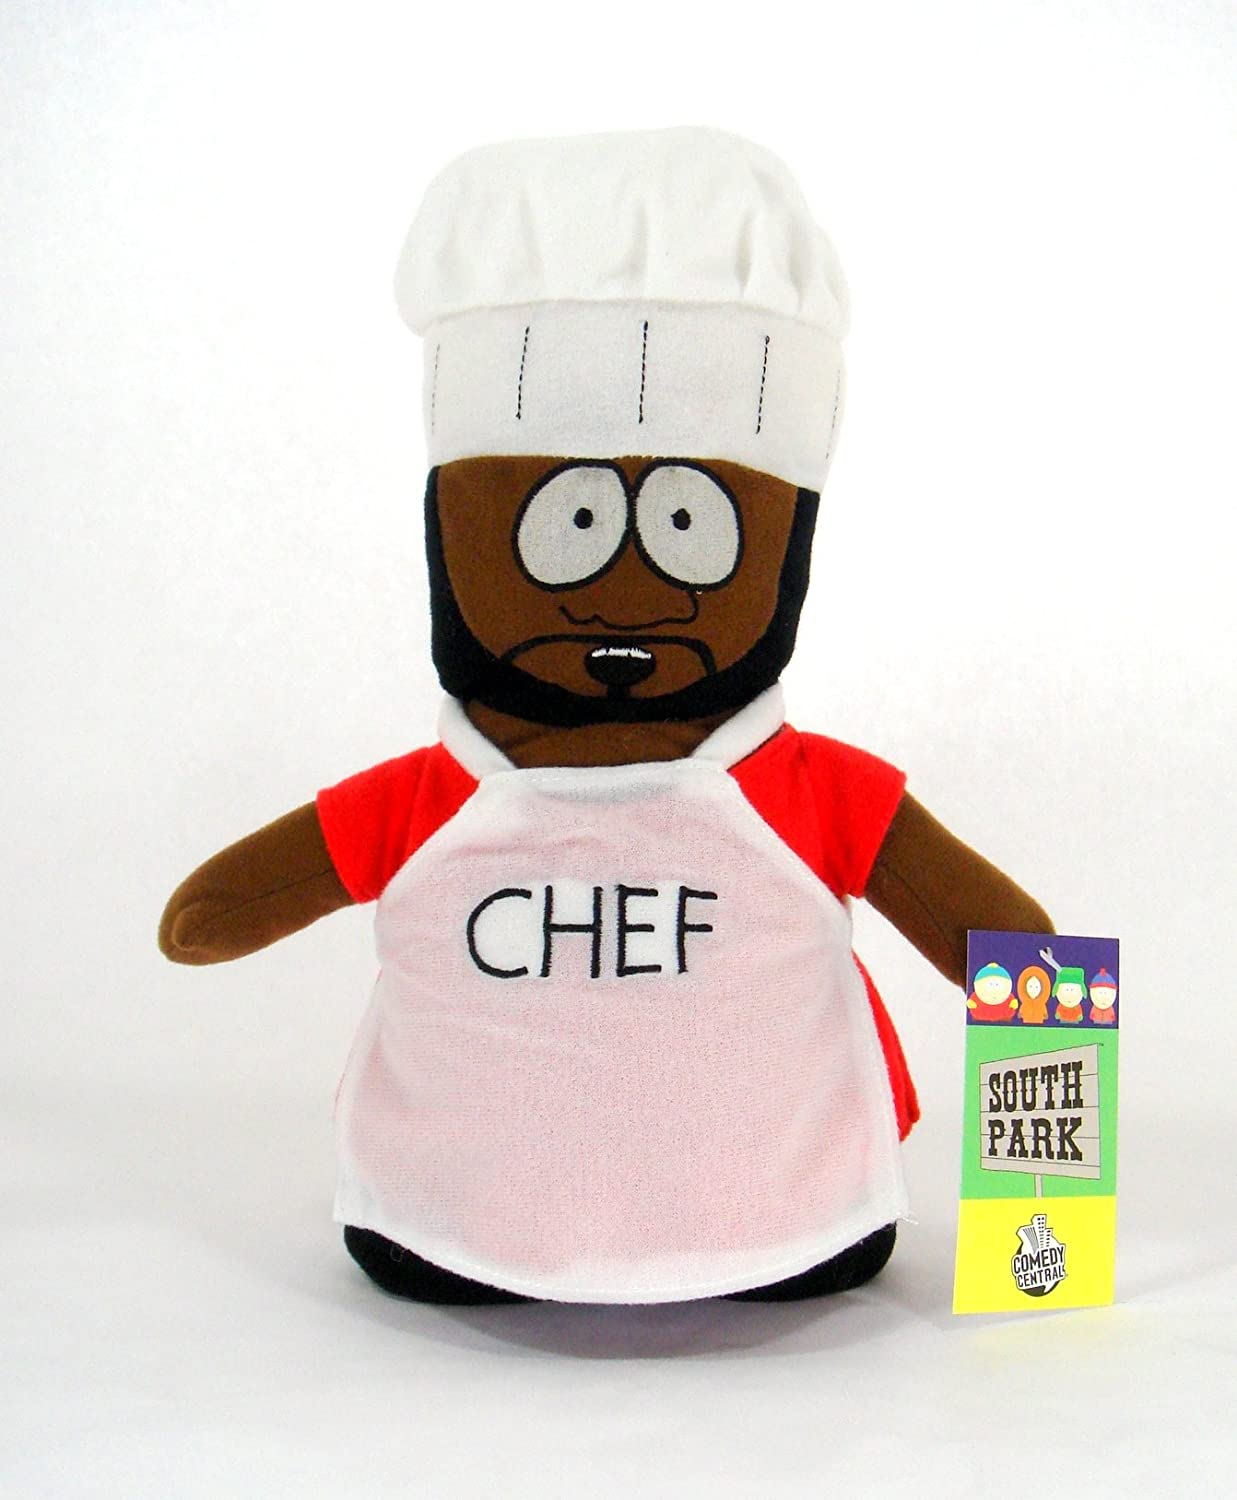 """SOUTH PARK CHEF PLUSH SMALL SOFT STUFFED DOLL TOY FIGURE LICENSED 7/""""-8/"""" NEW"""